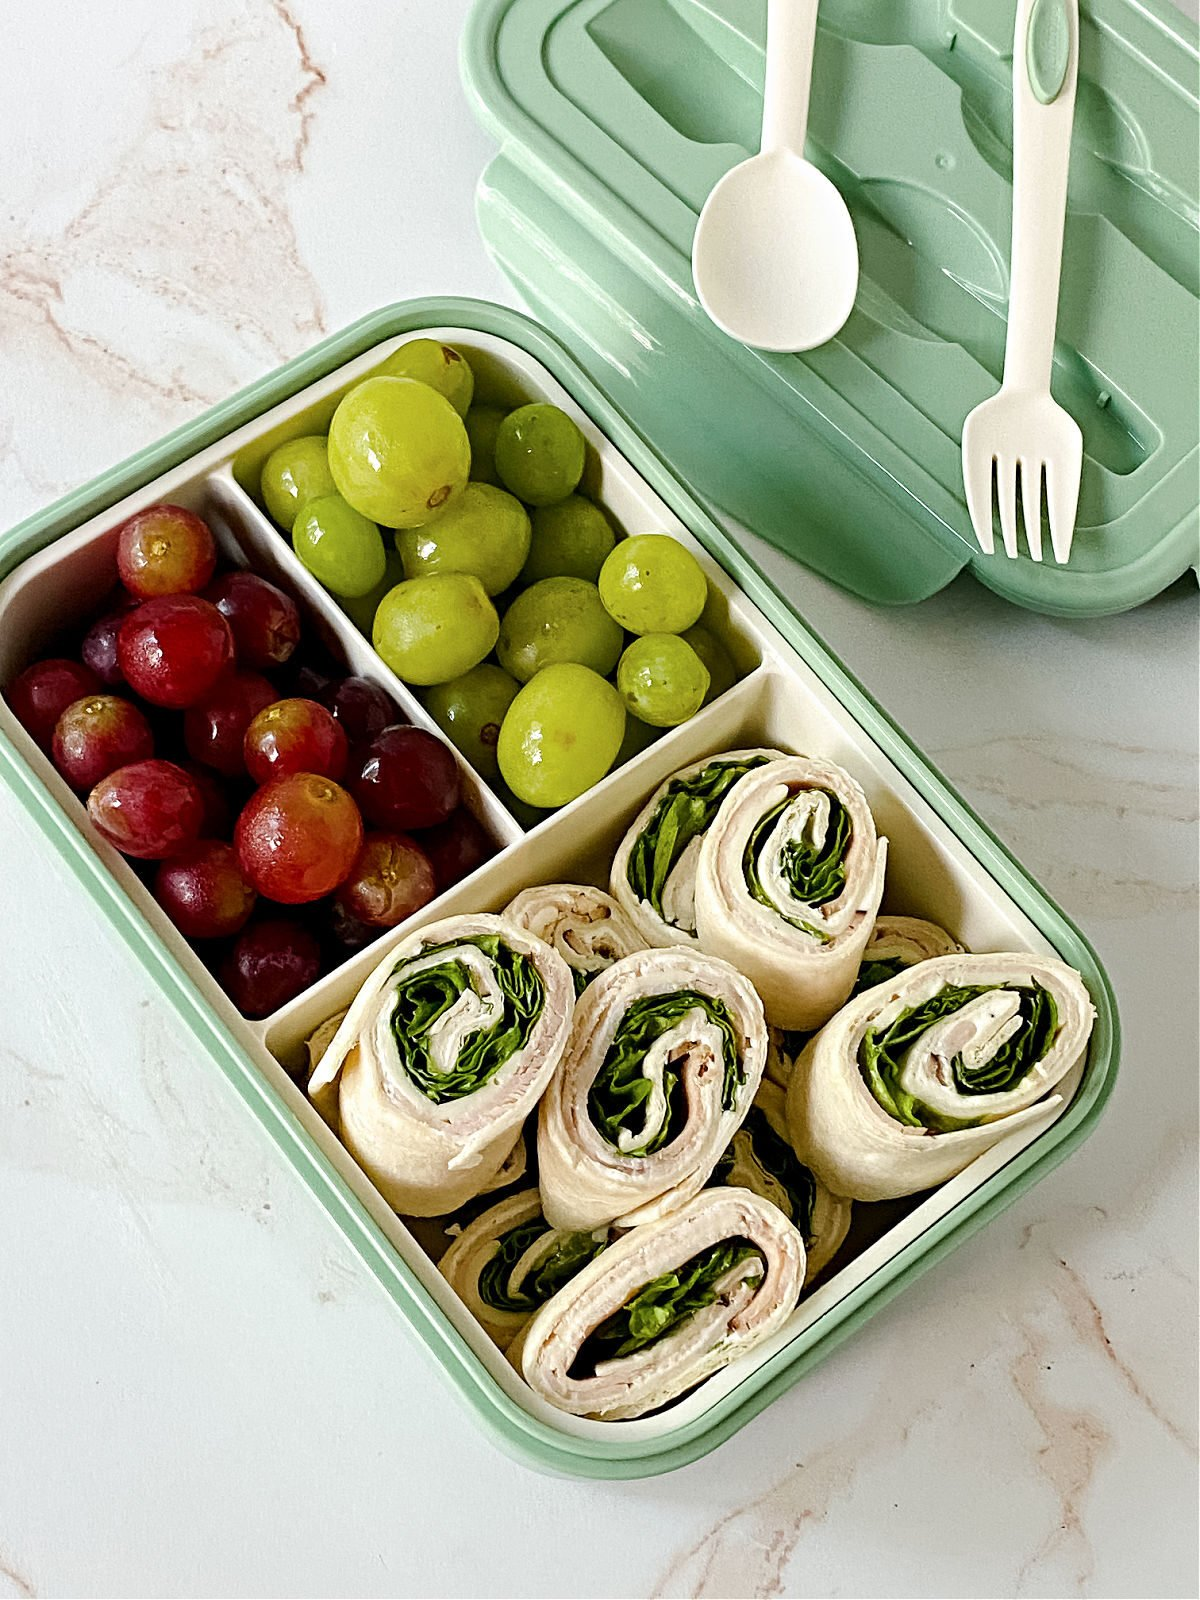 Pinwheel sandwiches and red and green grapes in a bento box.